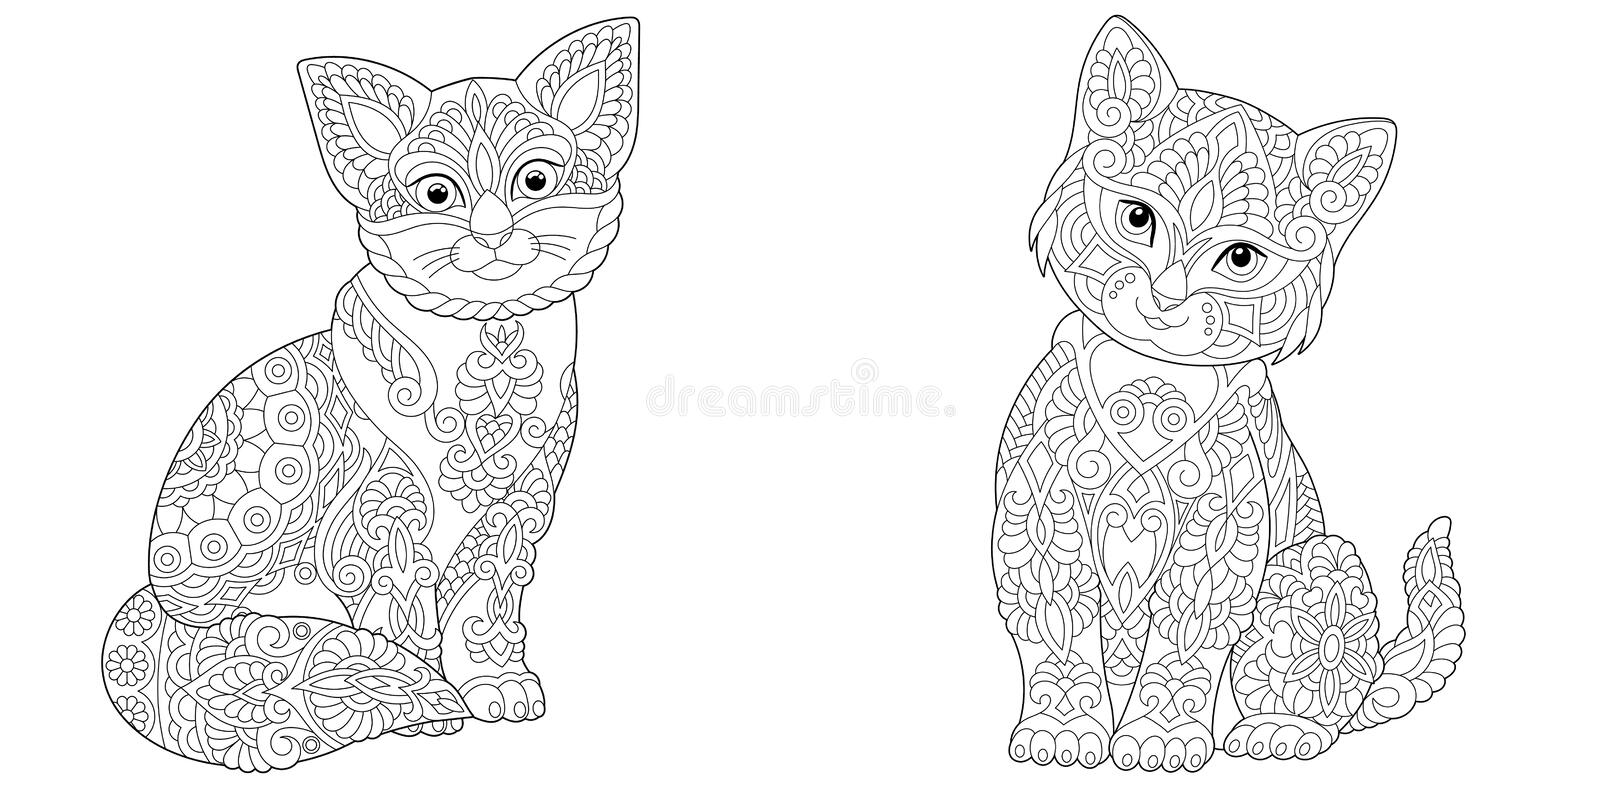 Coloring Pages With Two Cats Stock Vector - Illustration Of Kitten,  Drawing: 182957539